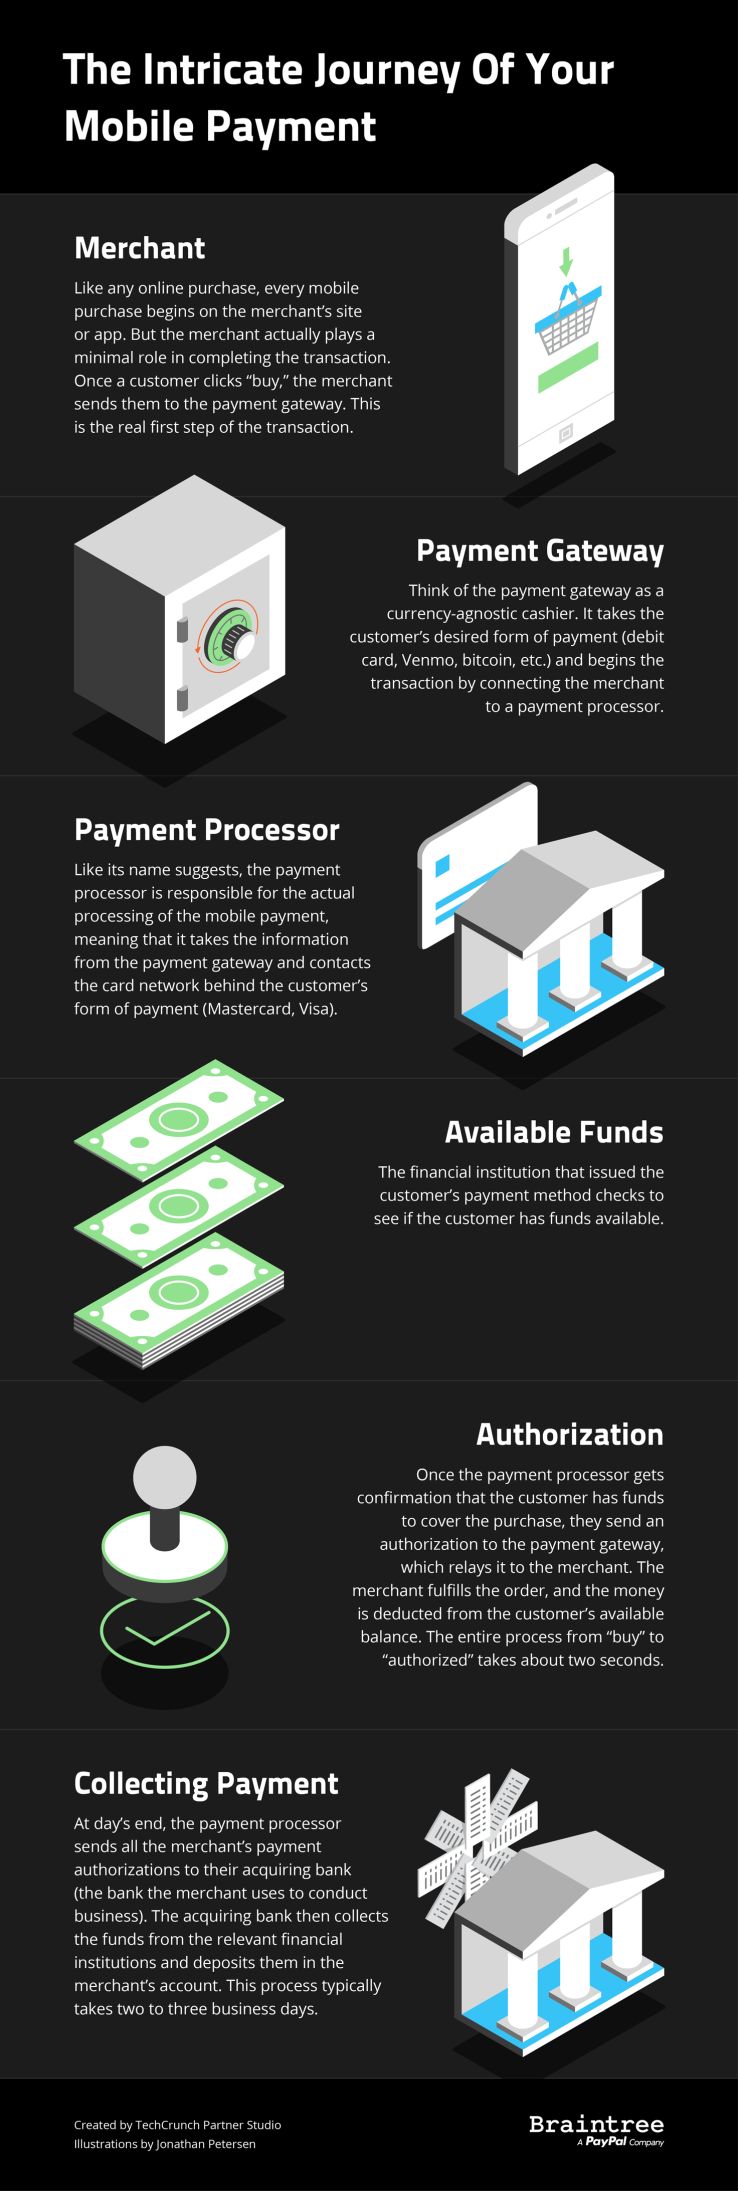 intricate journey of mobile payment